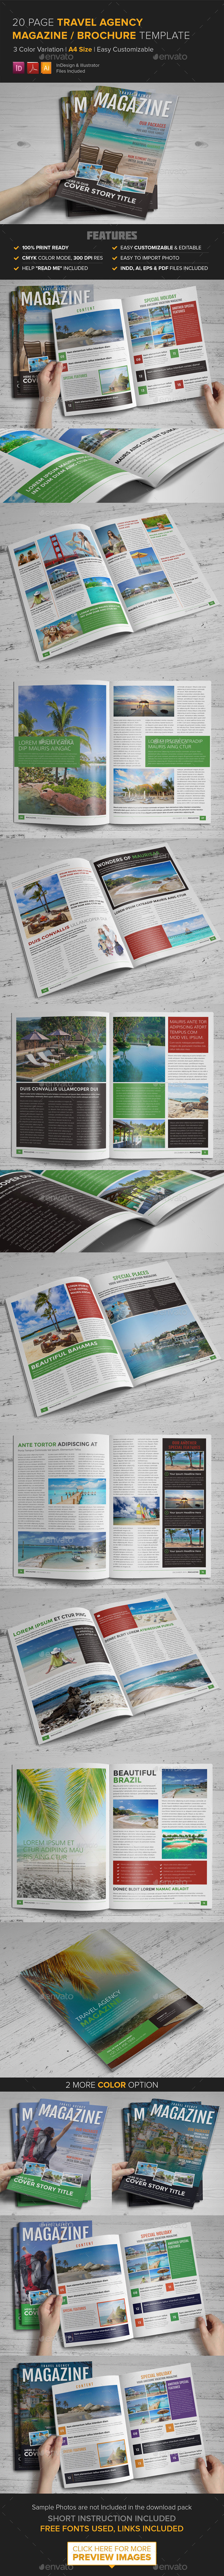 Travel Agency Magazine Brochure Template - InDesig - Magazines Print Templates